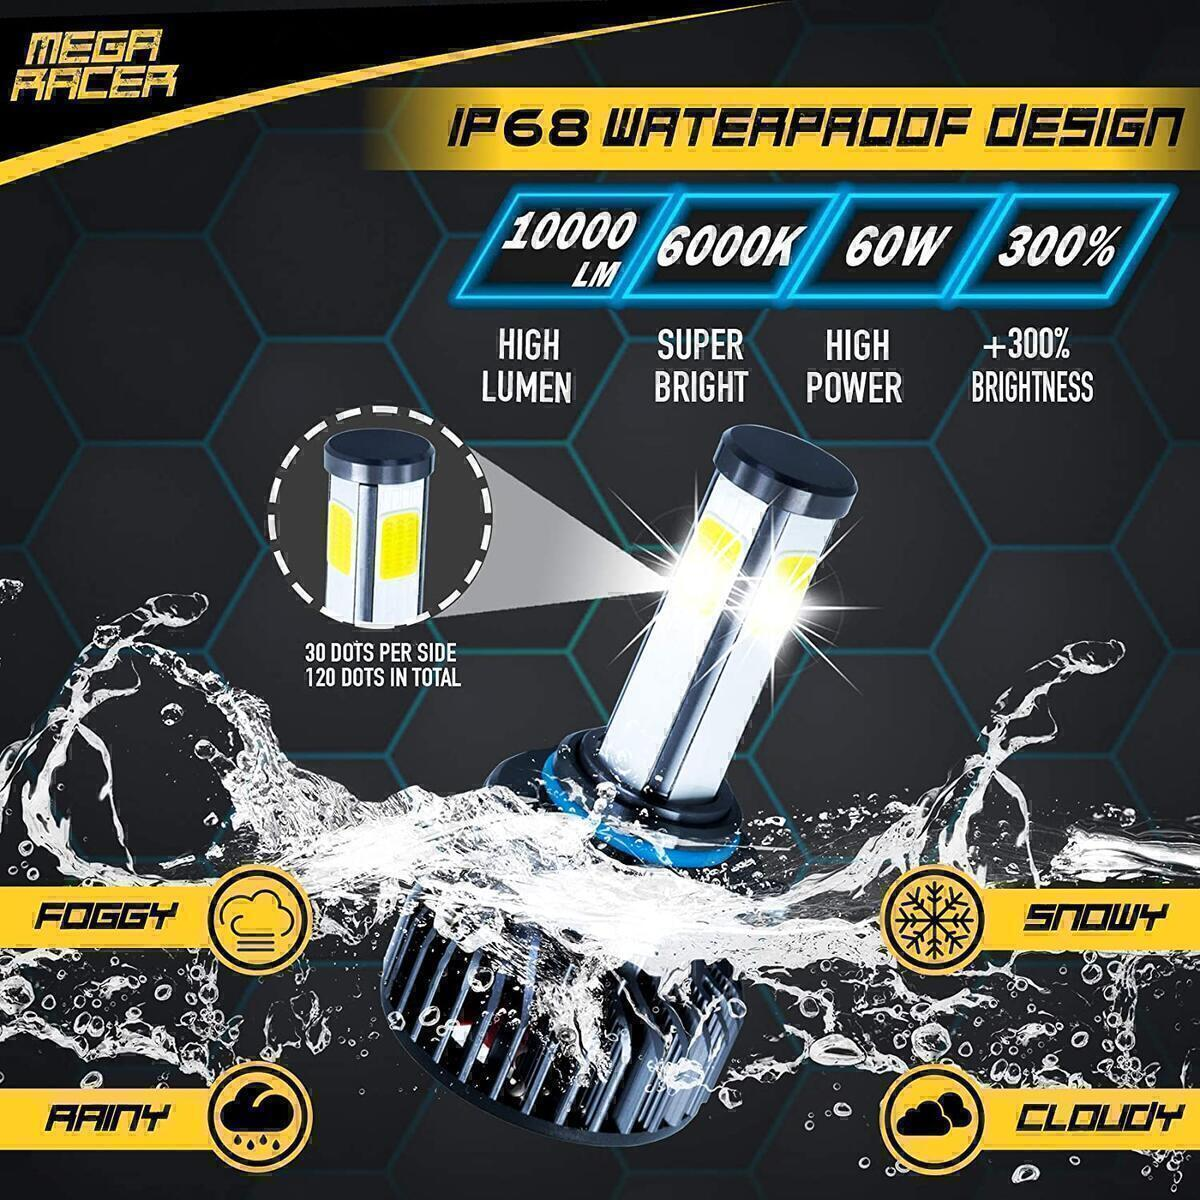 Mega Racer 4 Sided 9145/H10/9140/9155 LED Headlight Bulb - Fog Light 60 Watt 6000K Diamond White 10000 LM COB IP68 Waterproof Rating, 2 Pieces